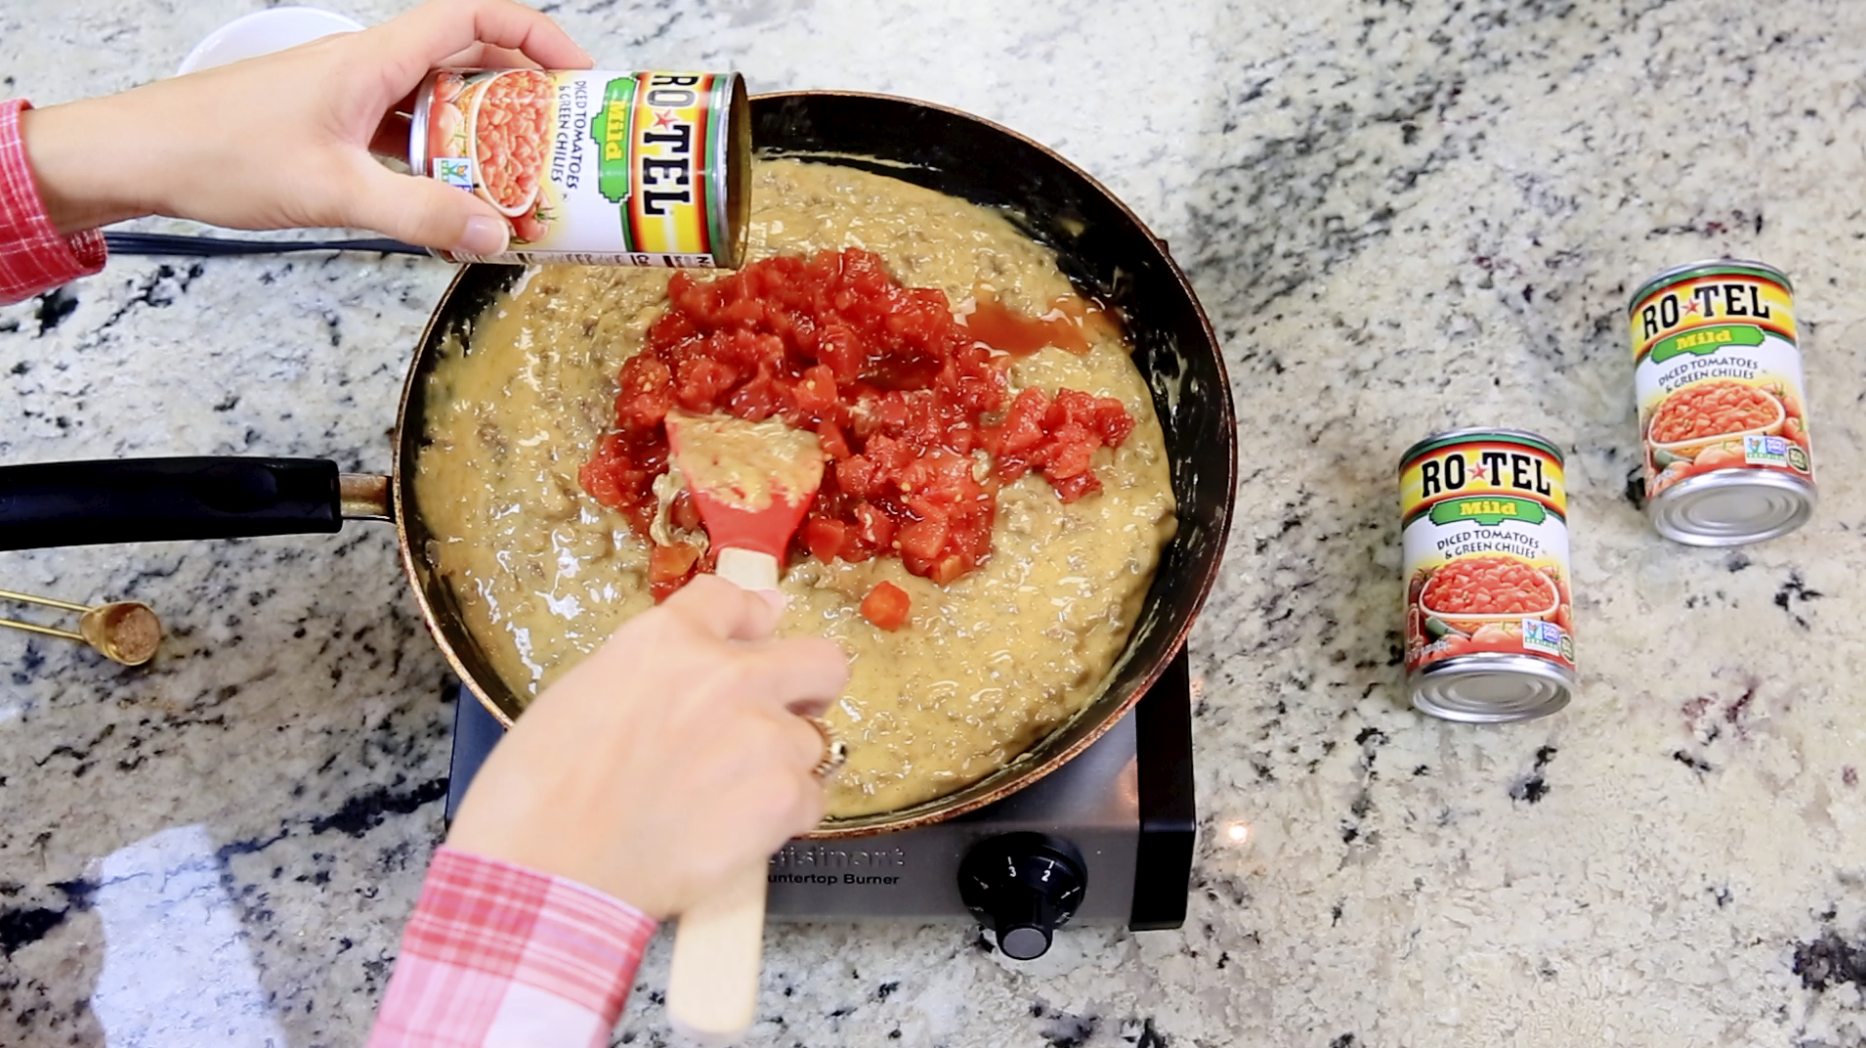 How To Make ROTEL Dip Step 4